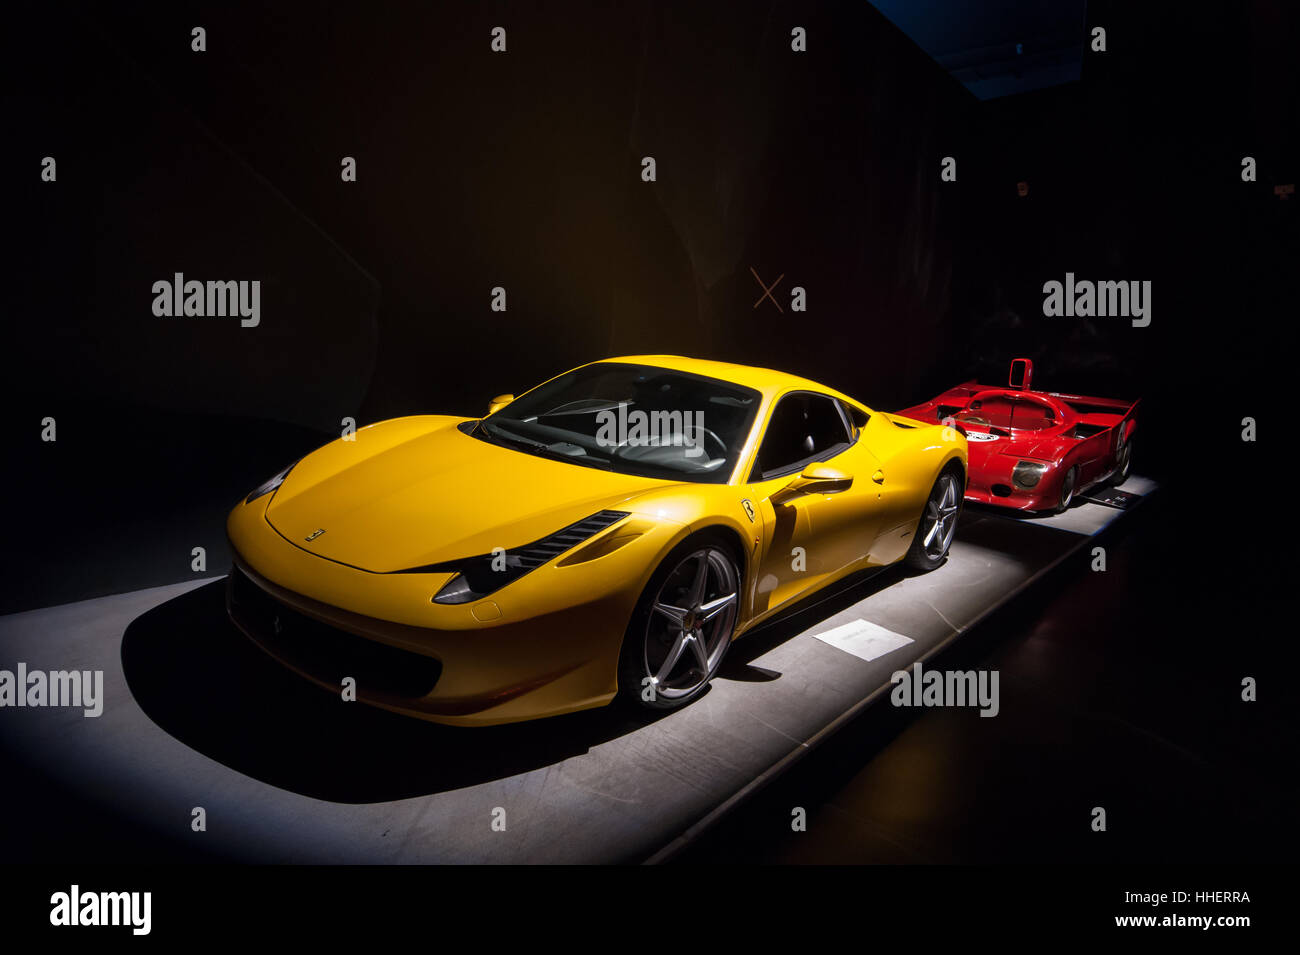 A yellow Ferrari 458 Italia V8 mid-engined sports car, design Donato Coco / Pininfarina, on view at the National - Stock Image